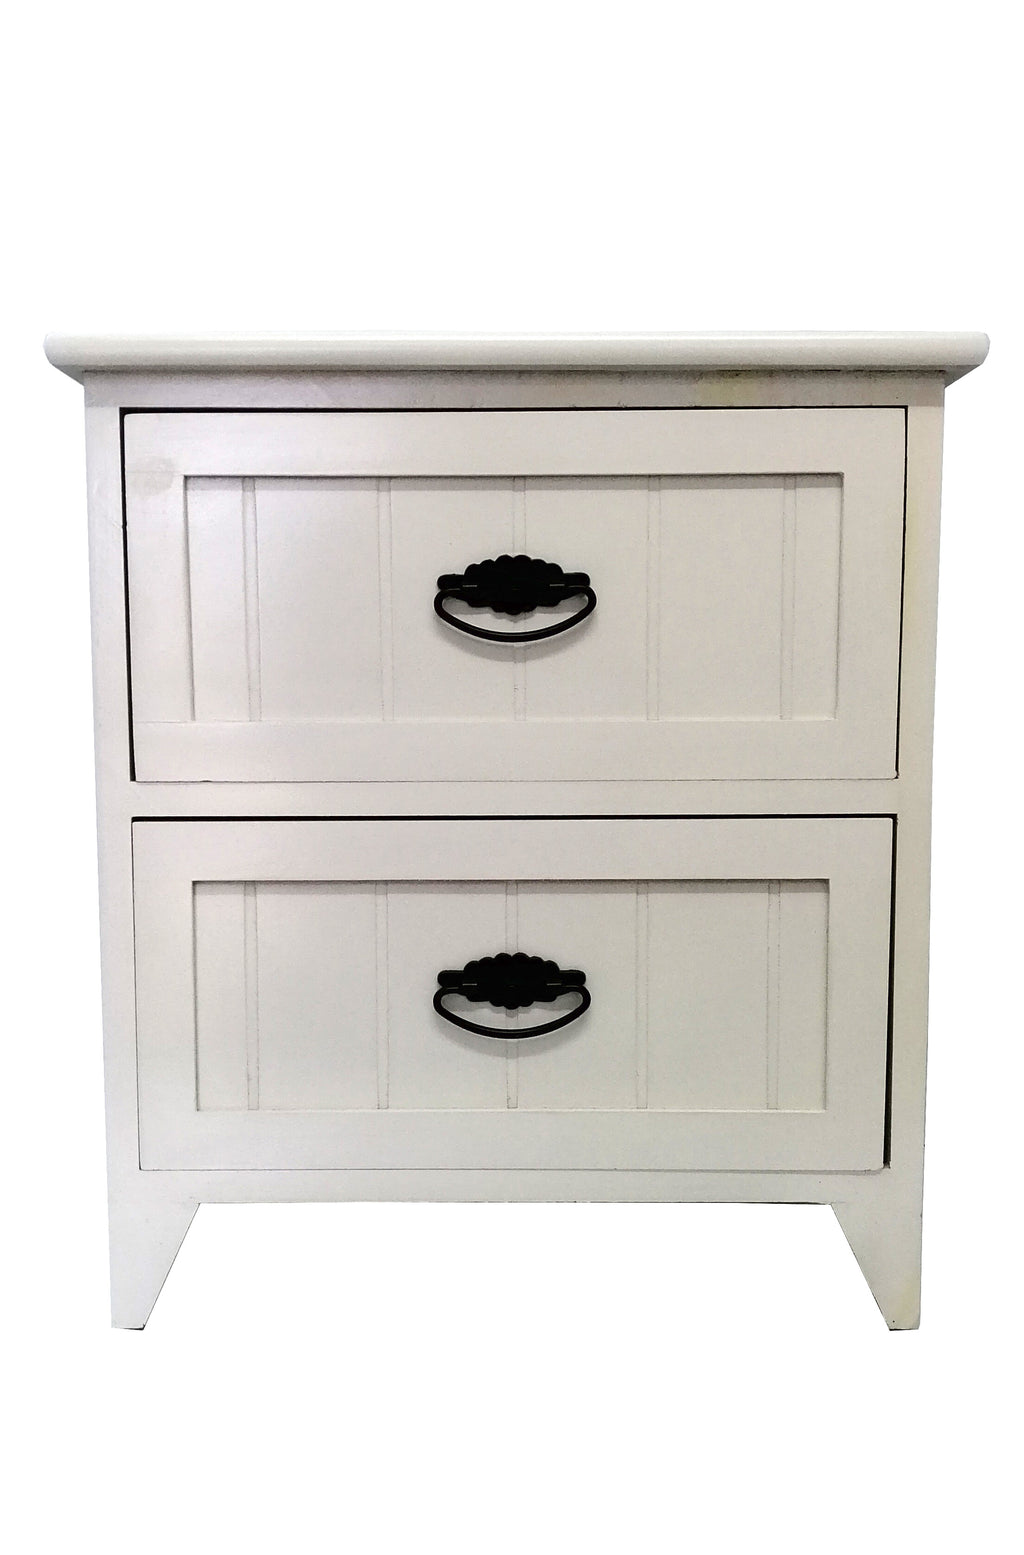 White Wooden Side Table With Draws Bedside Table Draw HW-638